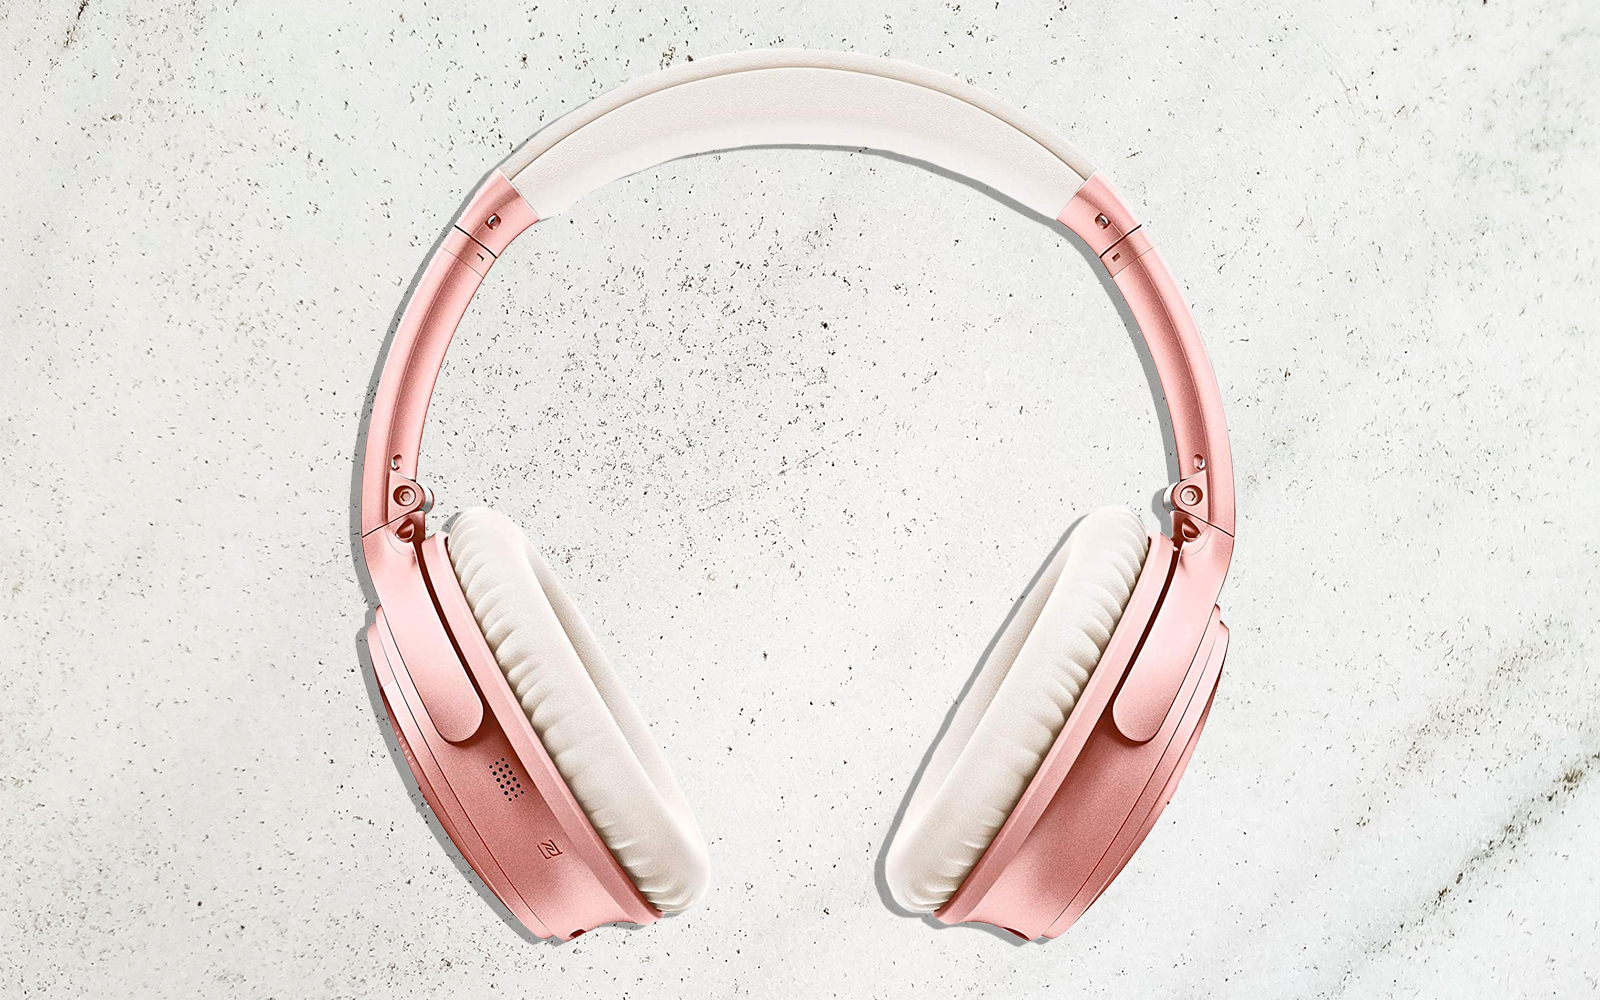 Bose's Limited-edition Rose Gold Headphones Are Back in Stock on Amazon — and They're $50 Off